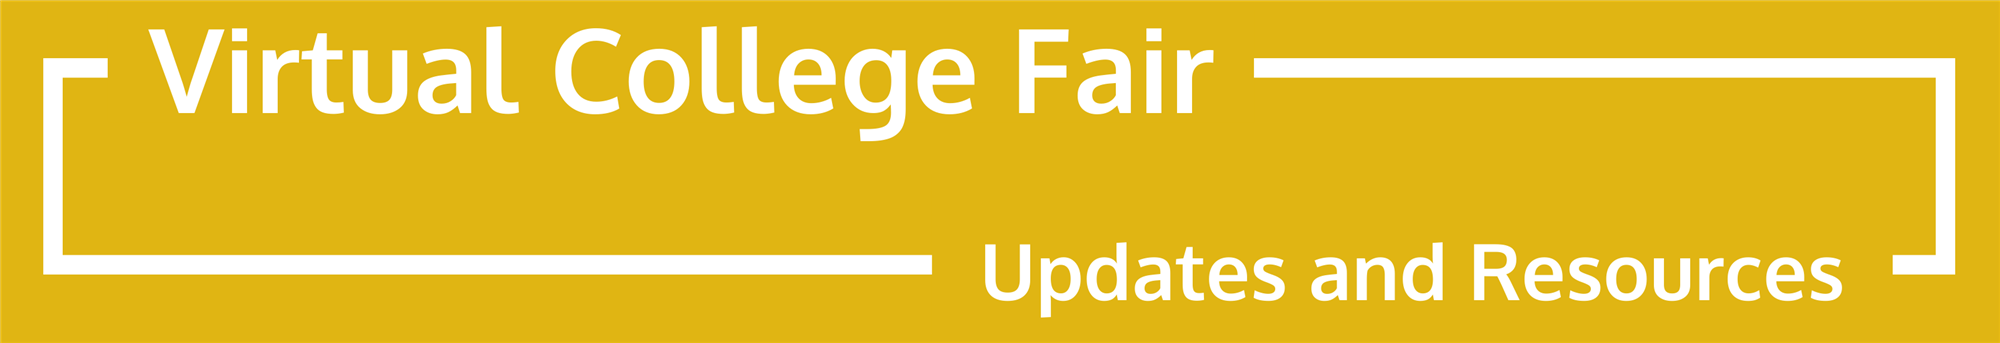 Virtual College Fair Updates and Resources